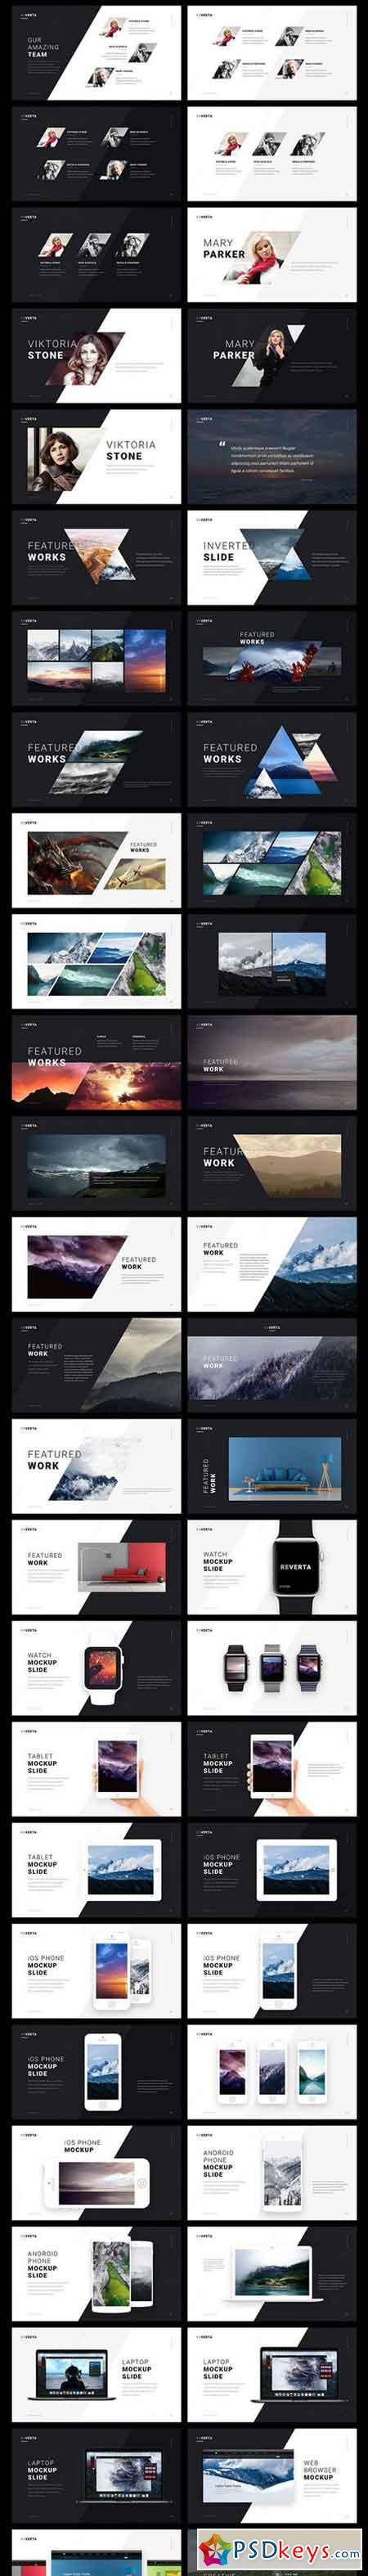 Reverta Google Slides Template 1431389 » Free Download Photoshop ...